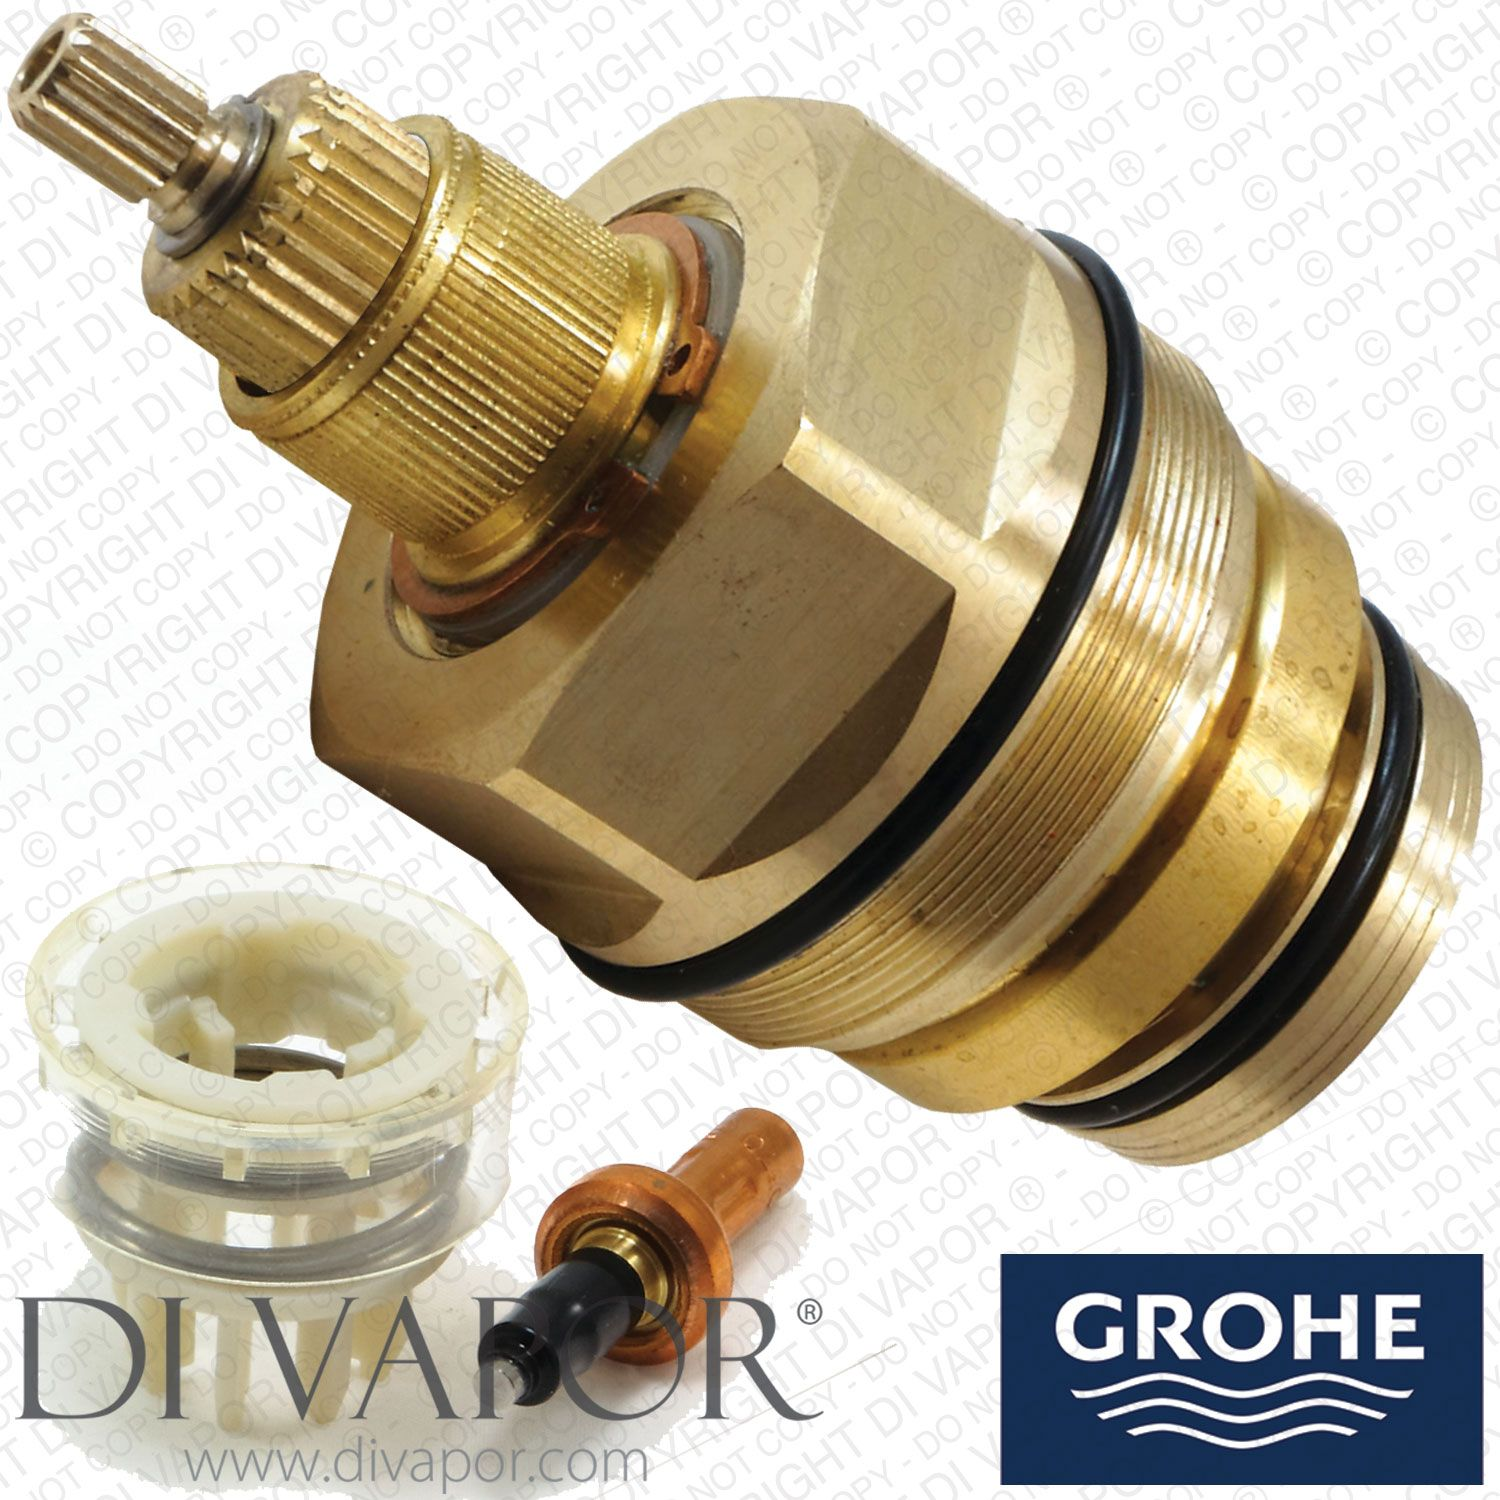 Grohe 47767000 Thermostatic Cartridge With Wax Thermostat And